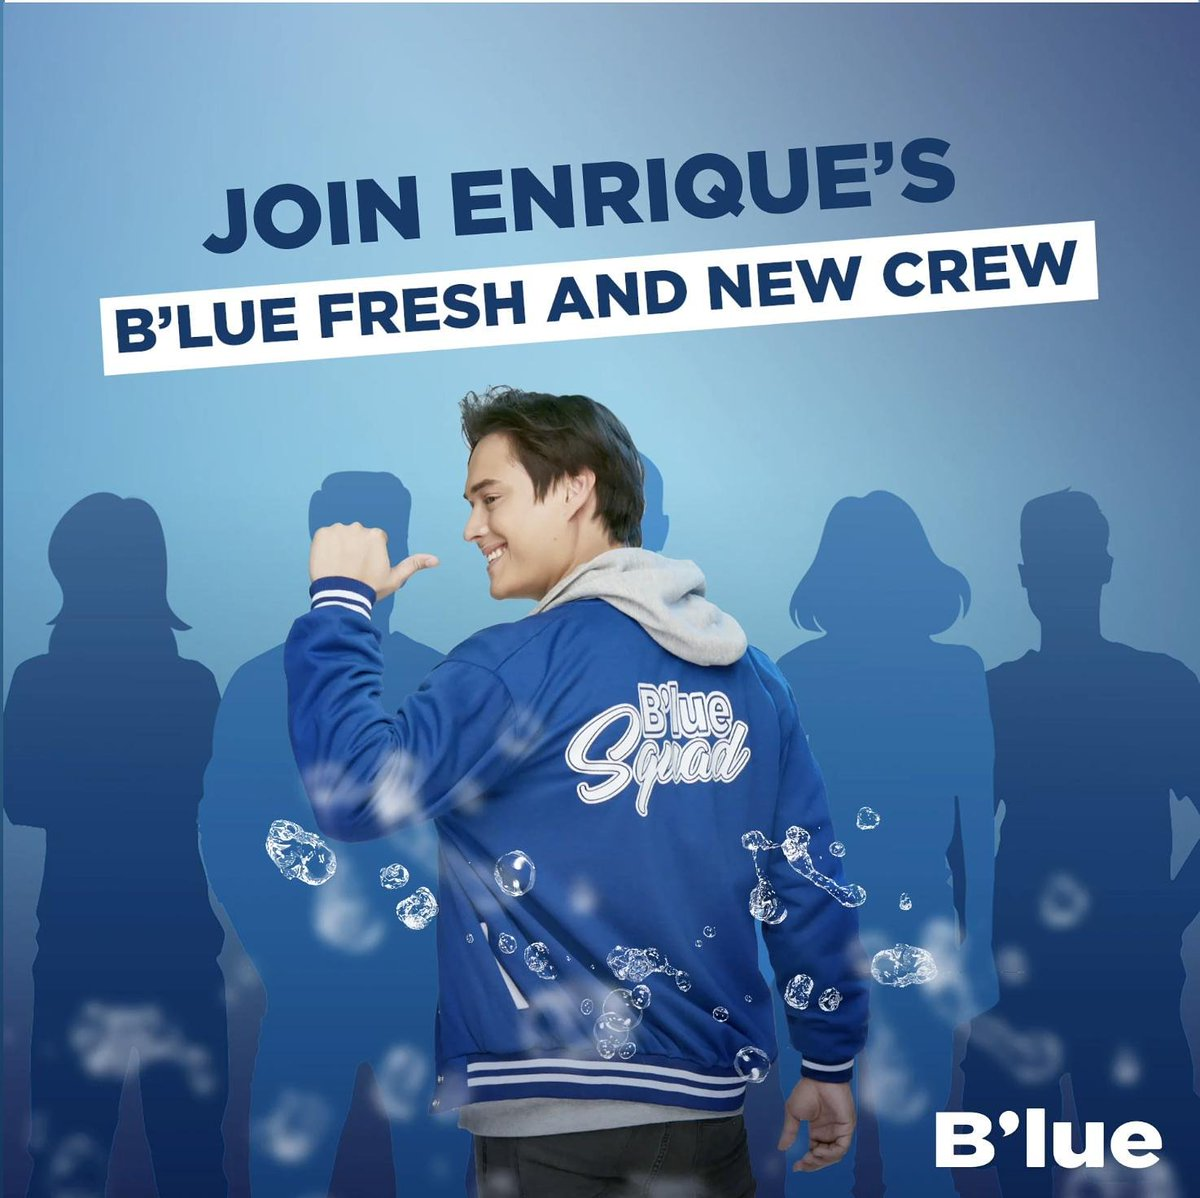 Eto na mga beshie, chance niyo nang maging part ng FRESH & NEW Crew ni Quen!  You QUEN join by simply uploading a photo of you drinking B'lue and tell us kung bakit ka laging #FreshAndNew coz of B'lue. Don't forget to tag our account and use the hashtag #BlueFreshAndNewCrew.